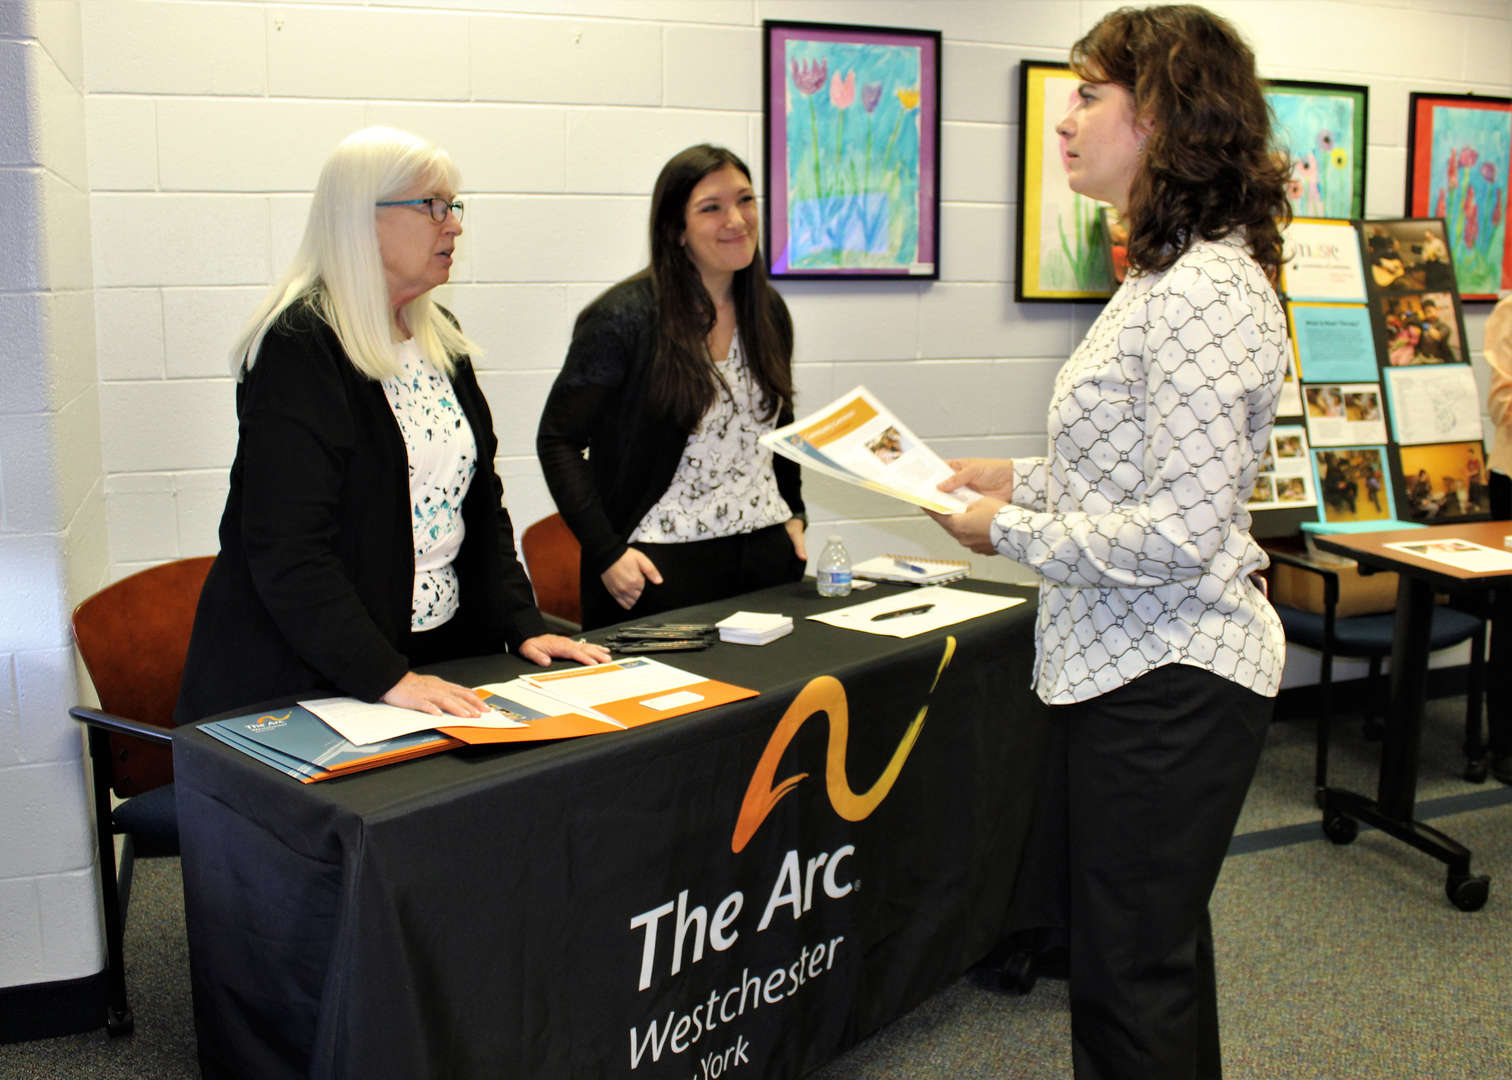 SEPTA President Anne Marie Cellante speaks with Arc Westchester representatives at the recent SEPTA meeting.